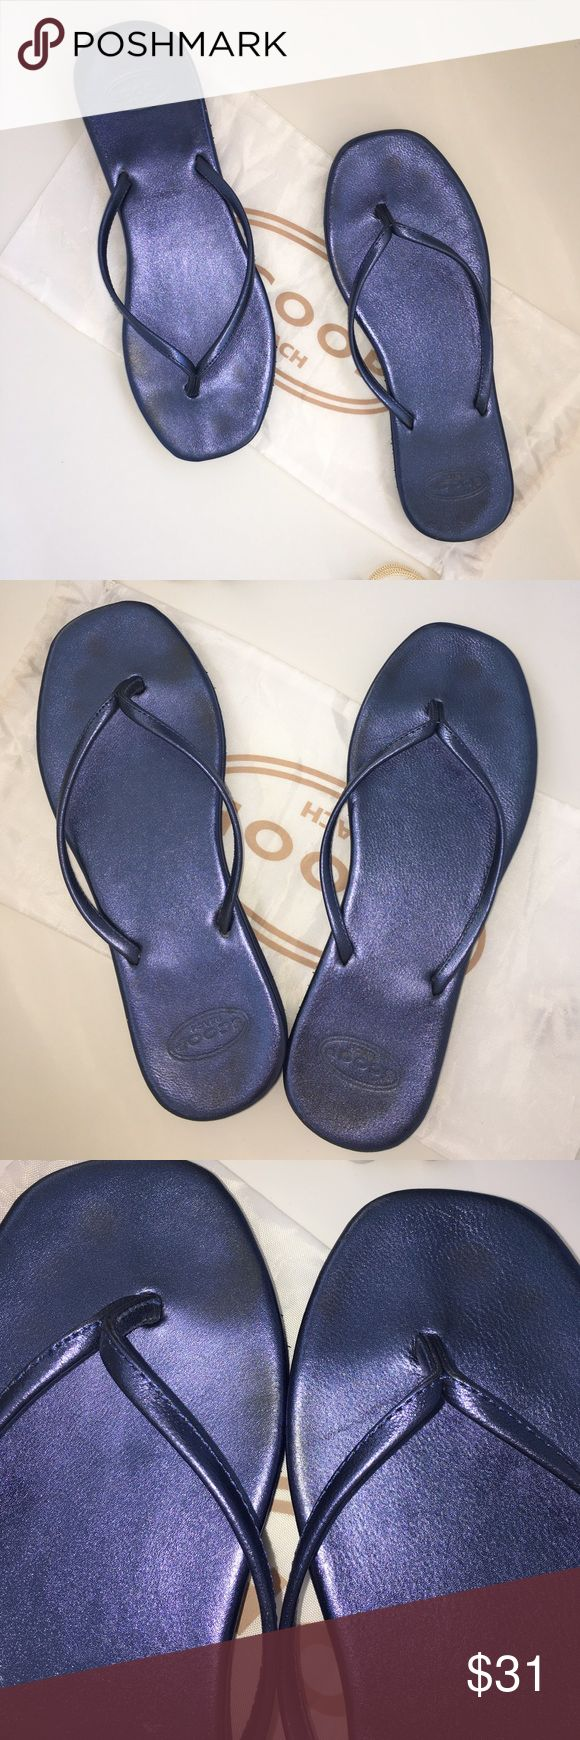 SCOOP Beach Denim Blue Metallic Flip Flops 7 Add just the right amount of sheen to your summer feet  with these Metallic blue flip flops from SCOOP Beach. Leather footbed and rubber sole. Very good condition.  Sole has minimal wear but foot bed has slightly darkened spots at toe and heel.  SCOOP drawstring bag included   Use for shoes or to bring along your sun tan lotion. SCOOP Beach  Shoes Sandals